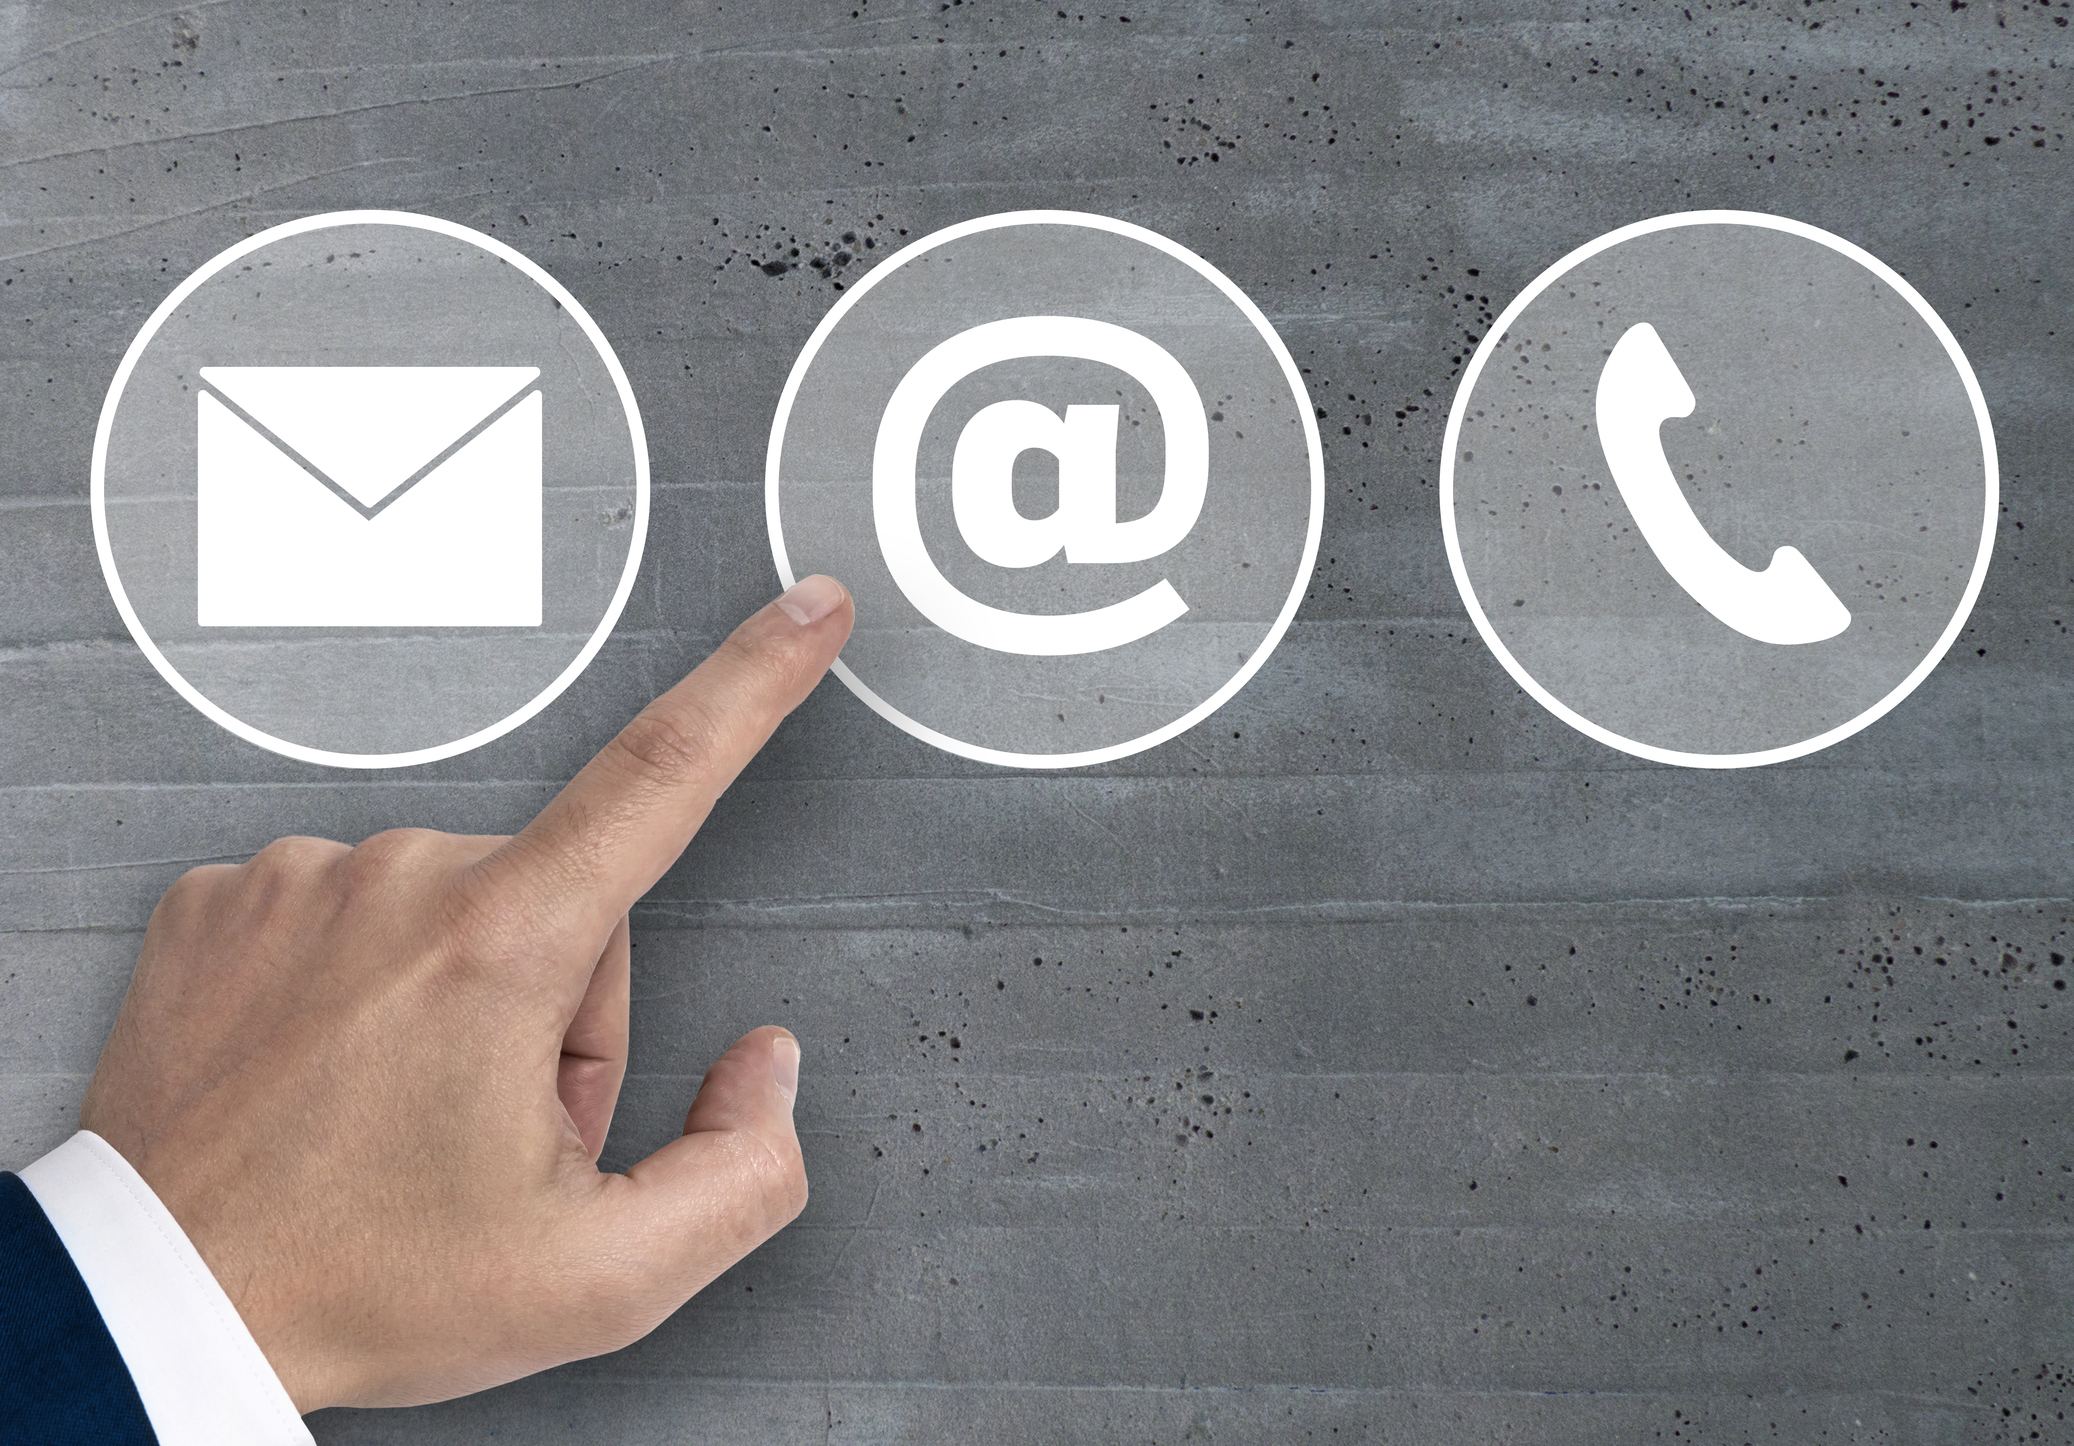 510080682-contact-icons-e-mail-newsletter-phone-conceptjpg